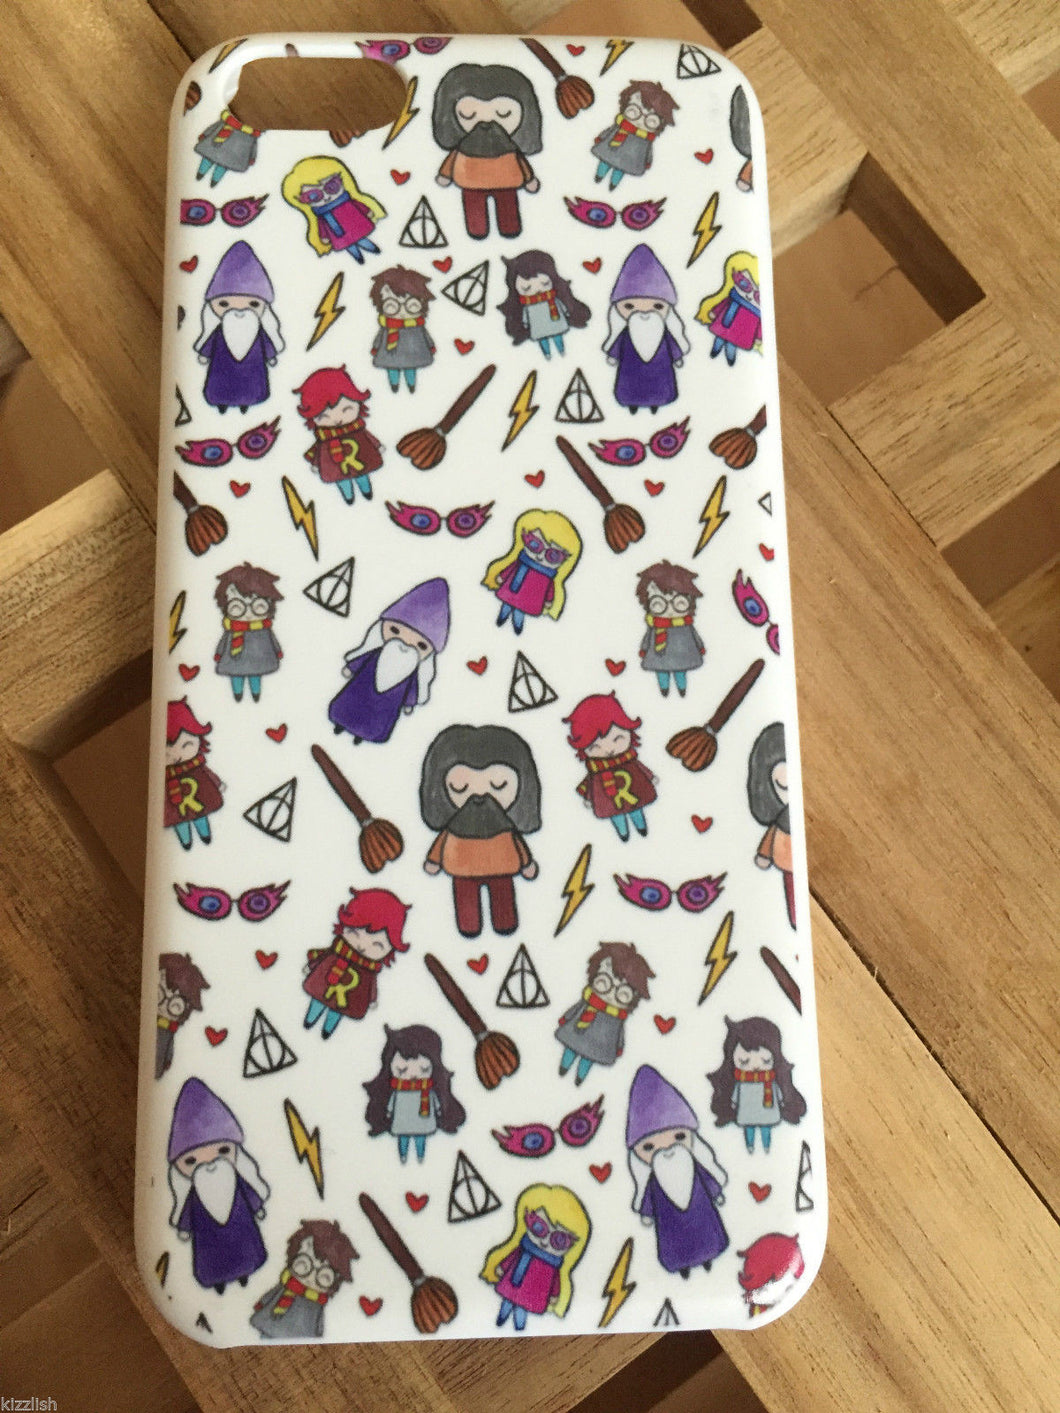 Harry Potter Cute Characters Phone case for iPhone 5C. Lovely cartoon illustrated design. The perfect gift for any Harry Potter fan.